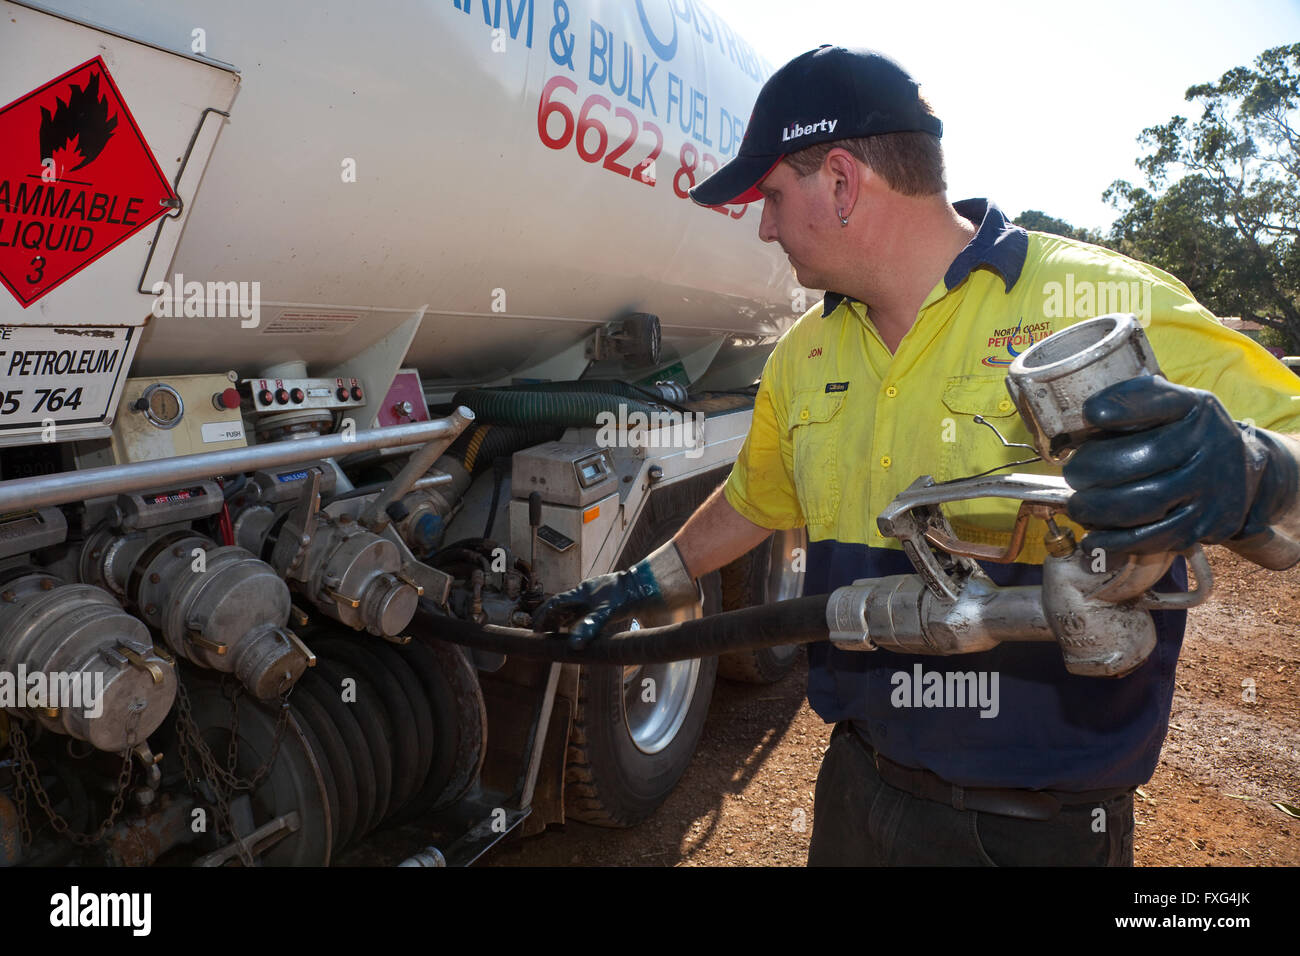 Rural bulk fuel delivery by tanker, Lismore, NSW, Australia - Stock Image